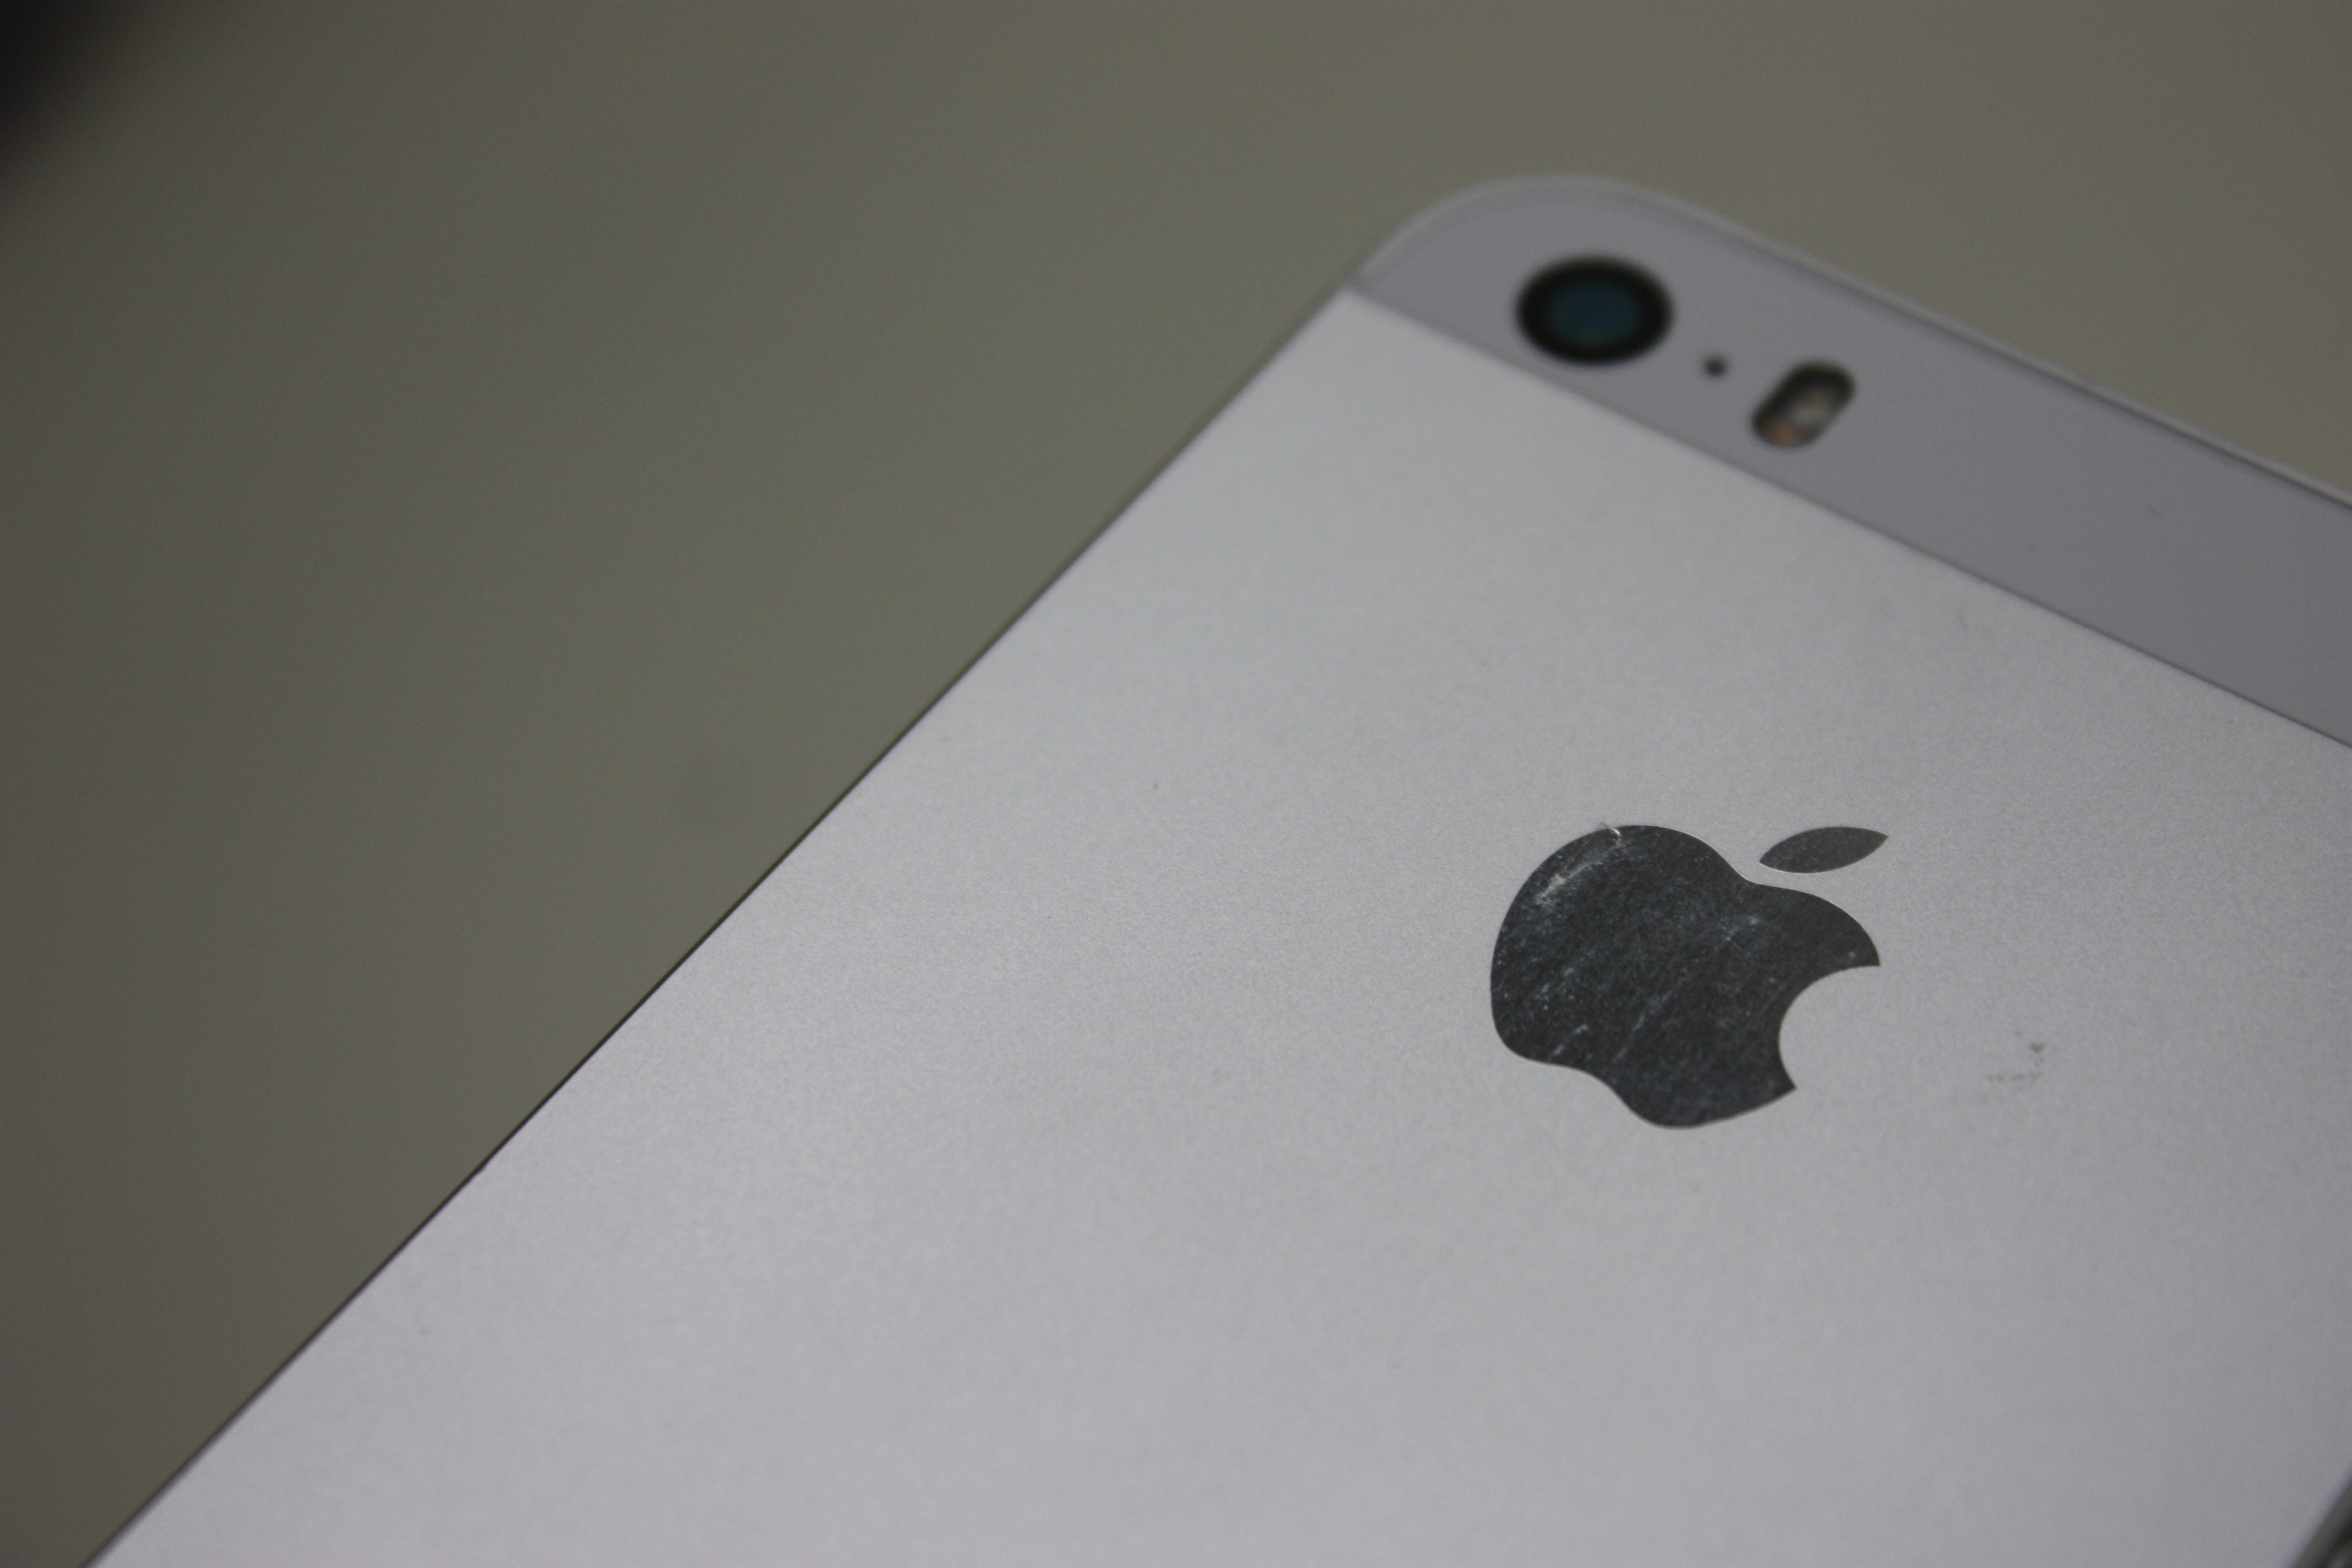 iPhone 5S, 16 GB, White/Silver, Product age: 40 months, image 4